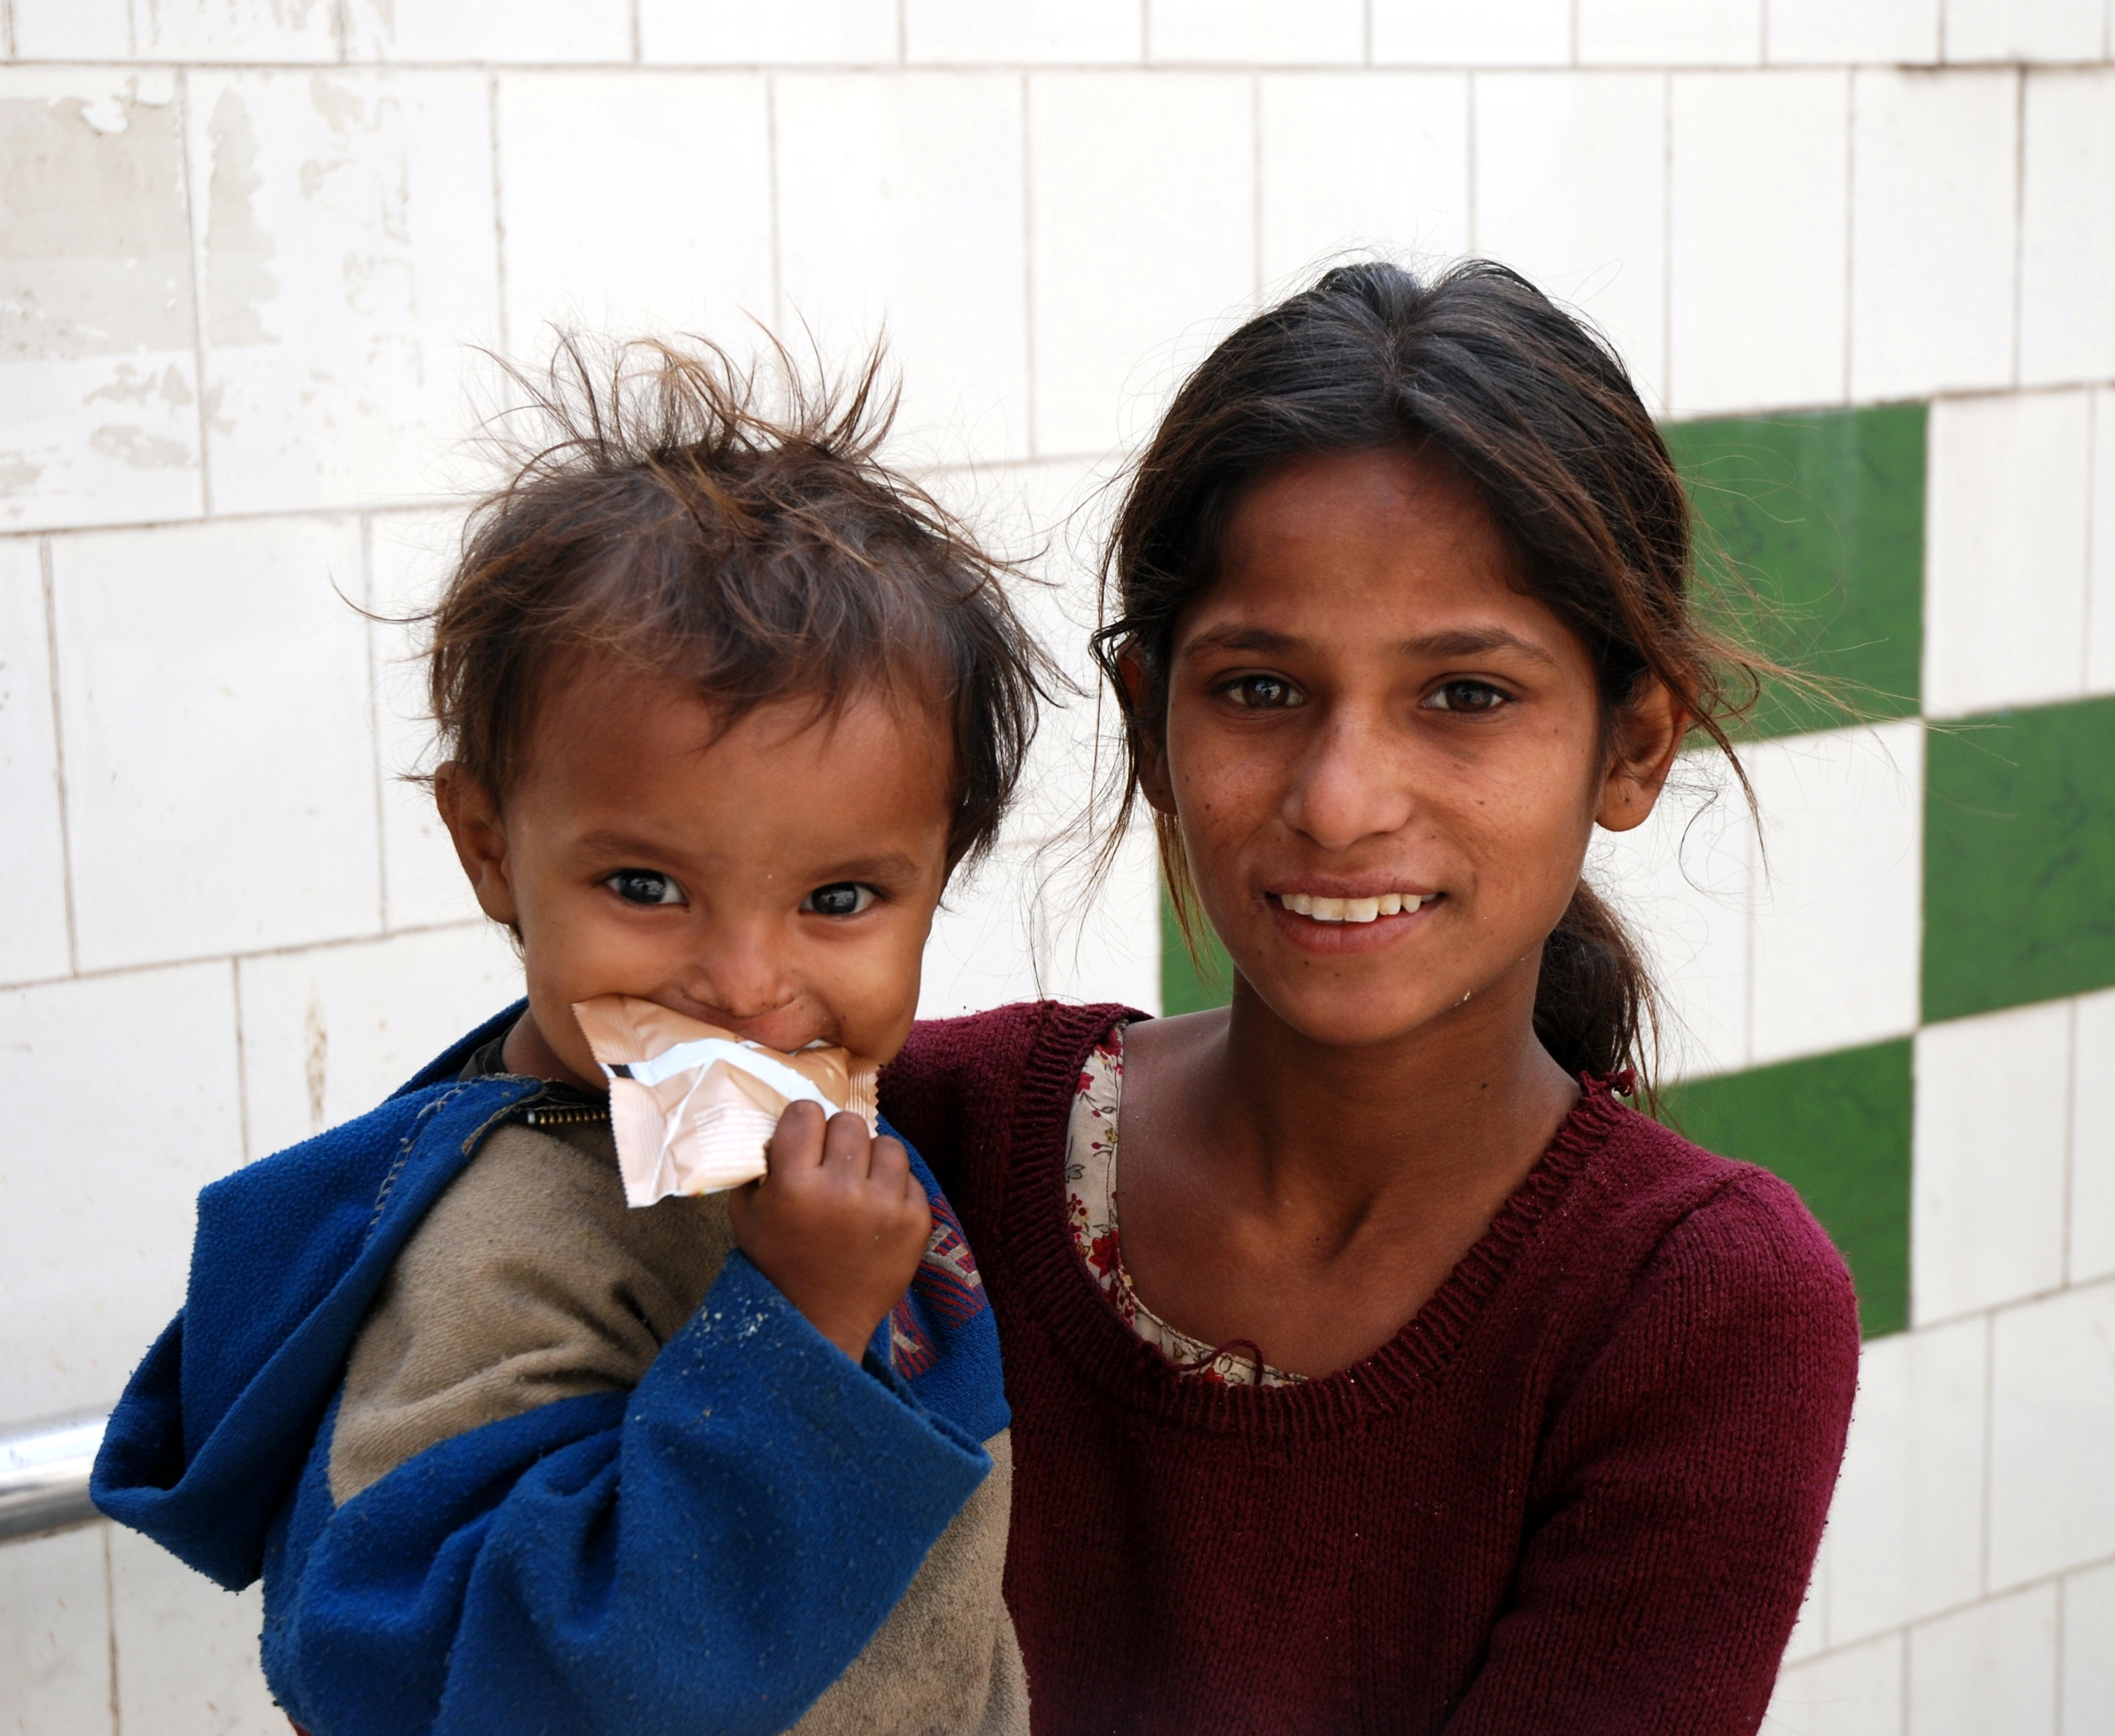 Children in India 1